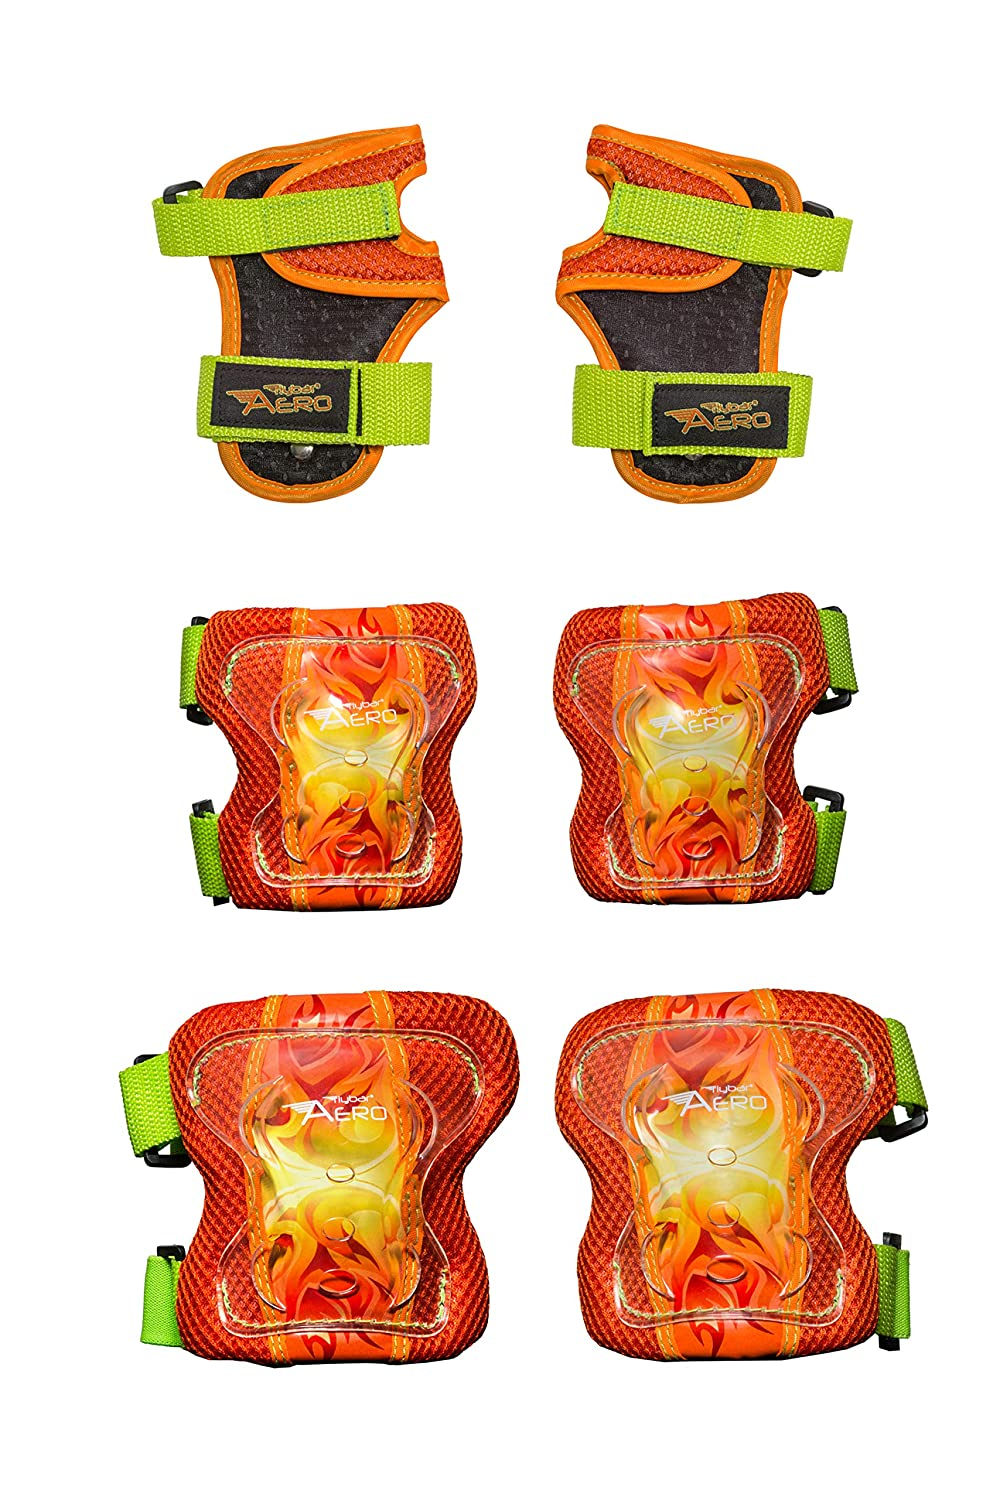 Flybar AERO Elbow, Knee and Wrist Guard Safety Set – Multi Sport Protection for Skateboarding, BMX, Pogoing, Inline Skating, Scooter Junior Size Ages 5 to 10